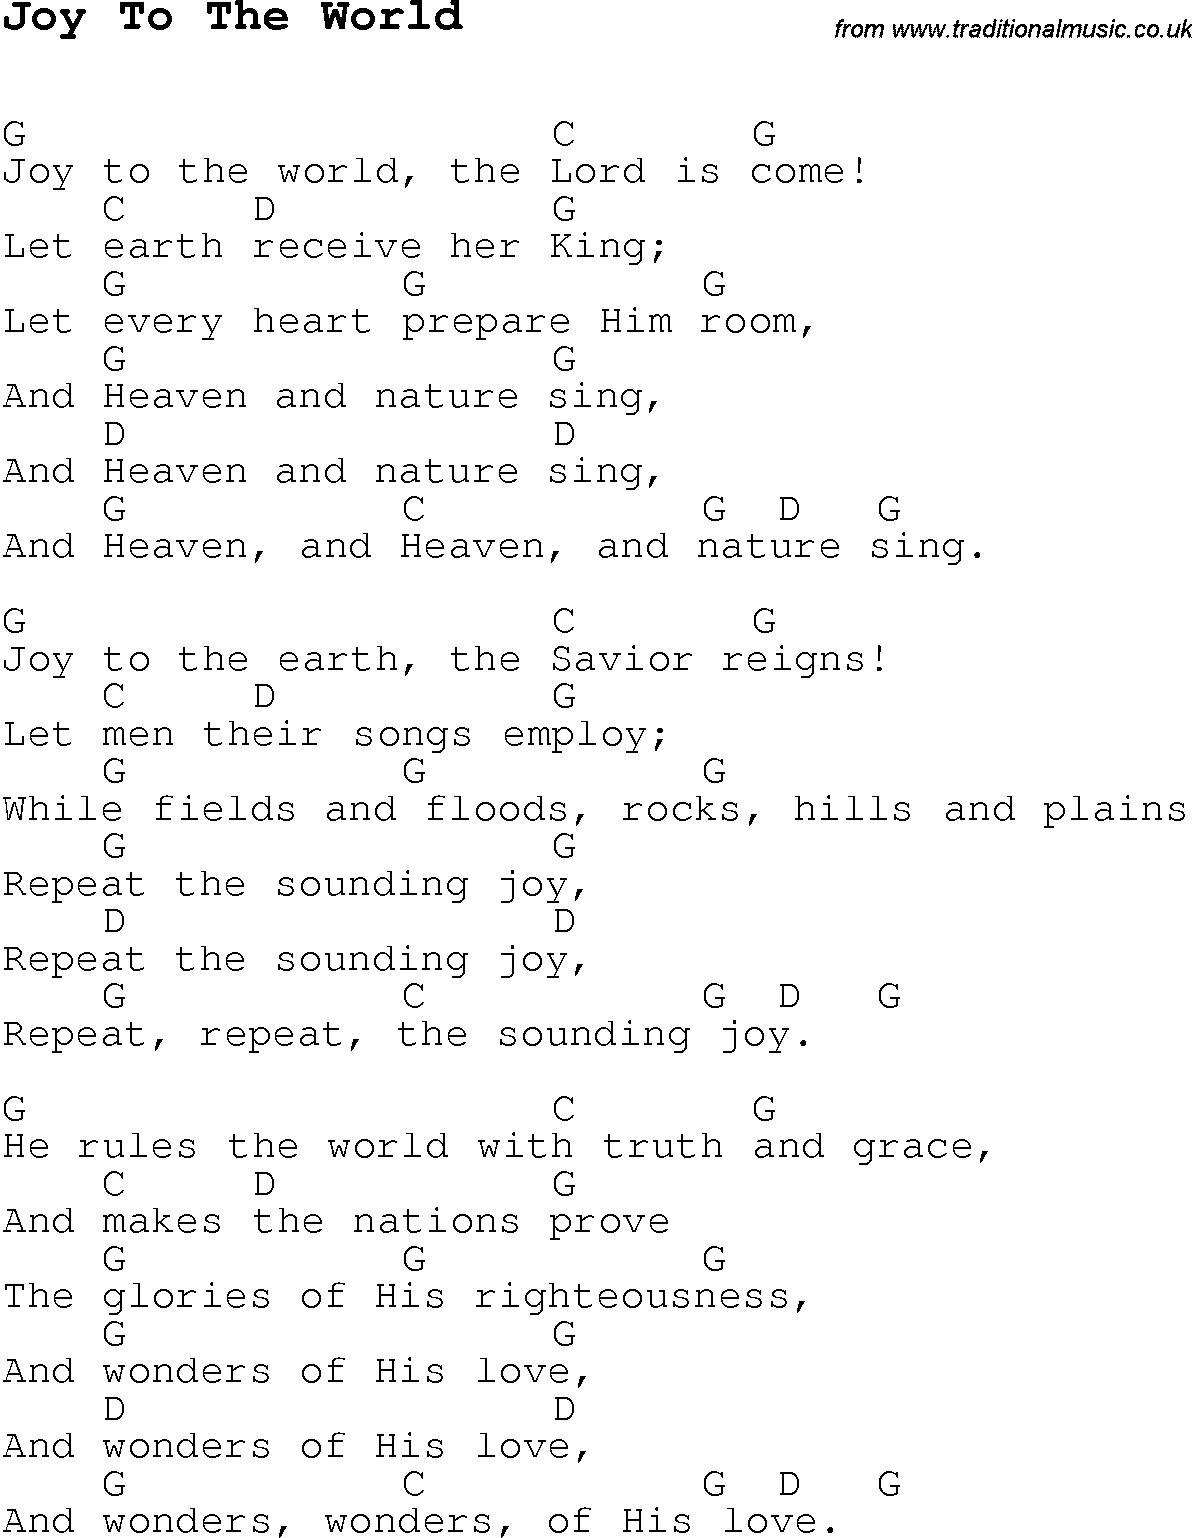 Christmas Carol/Song lyrics with chords for Joy To The World